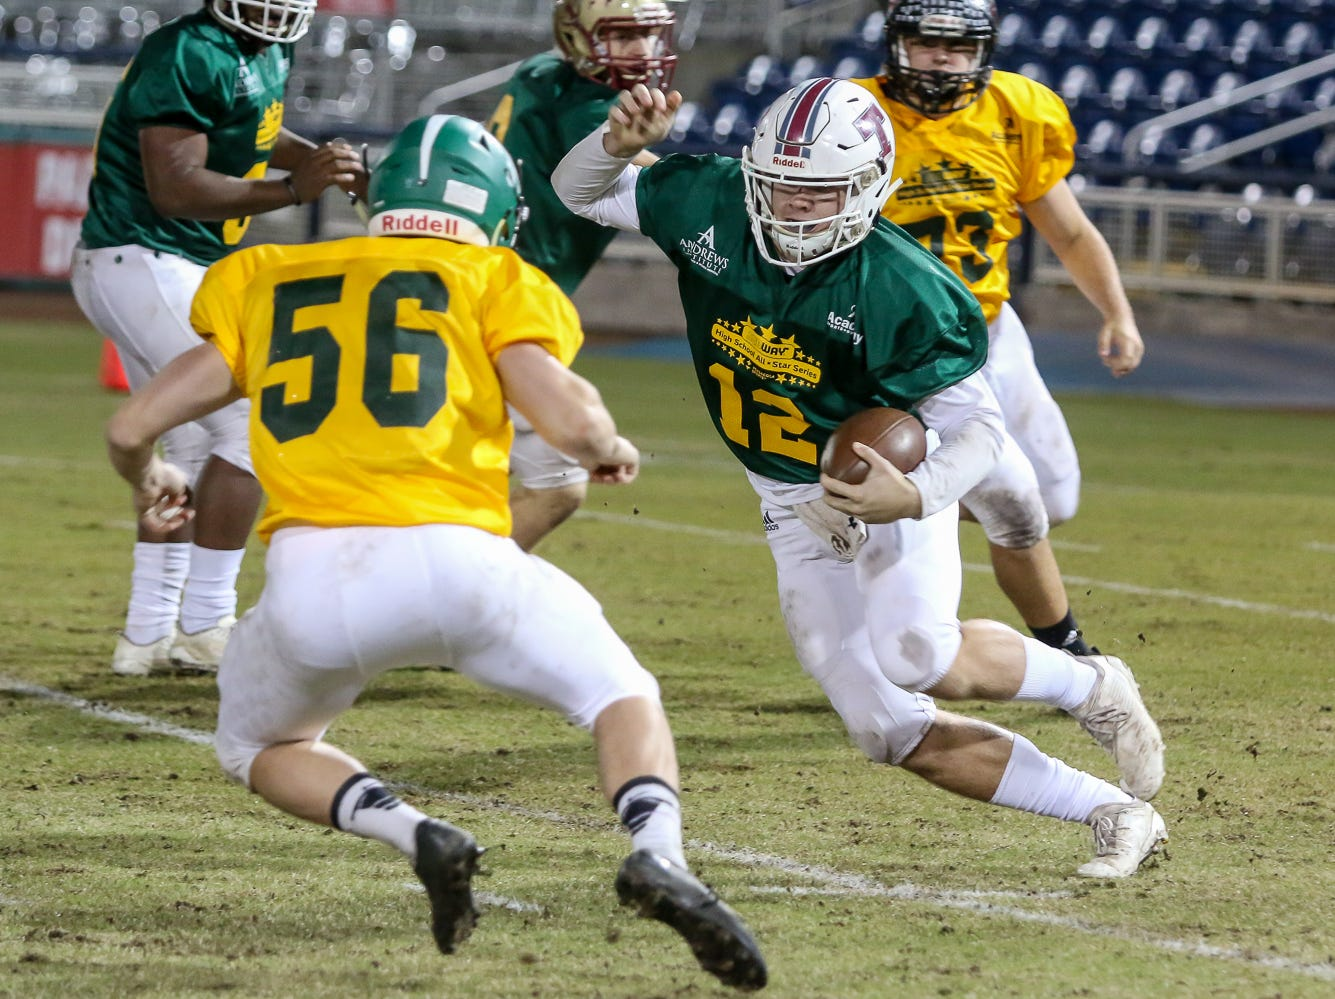 West beats East as defenses rule in Subway High School All Star Football game